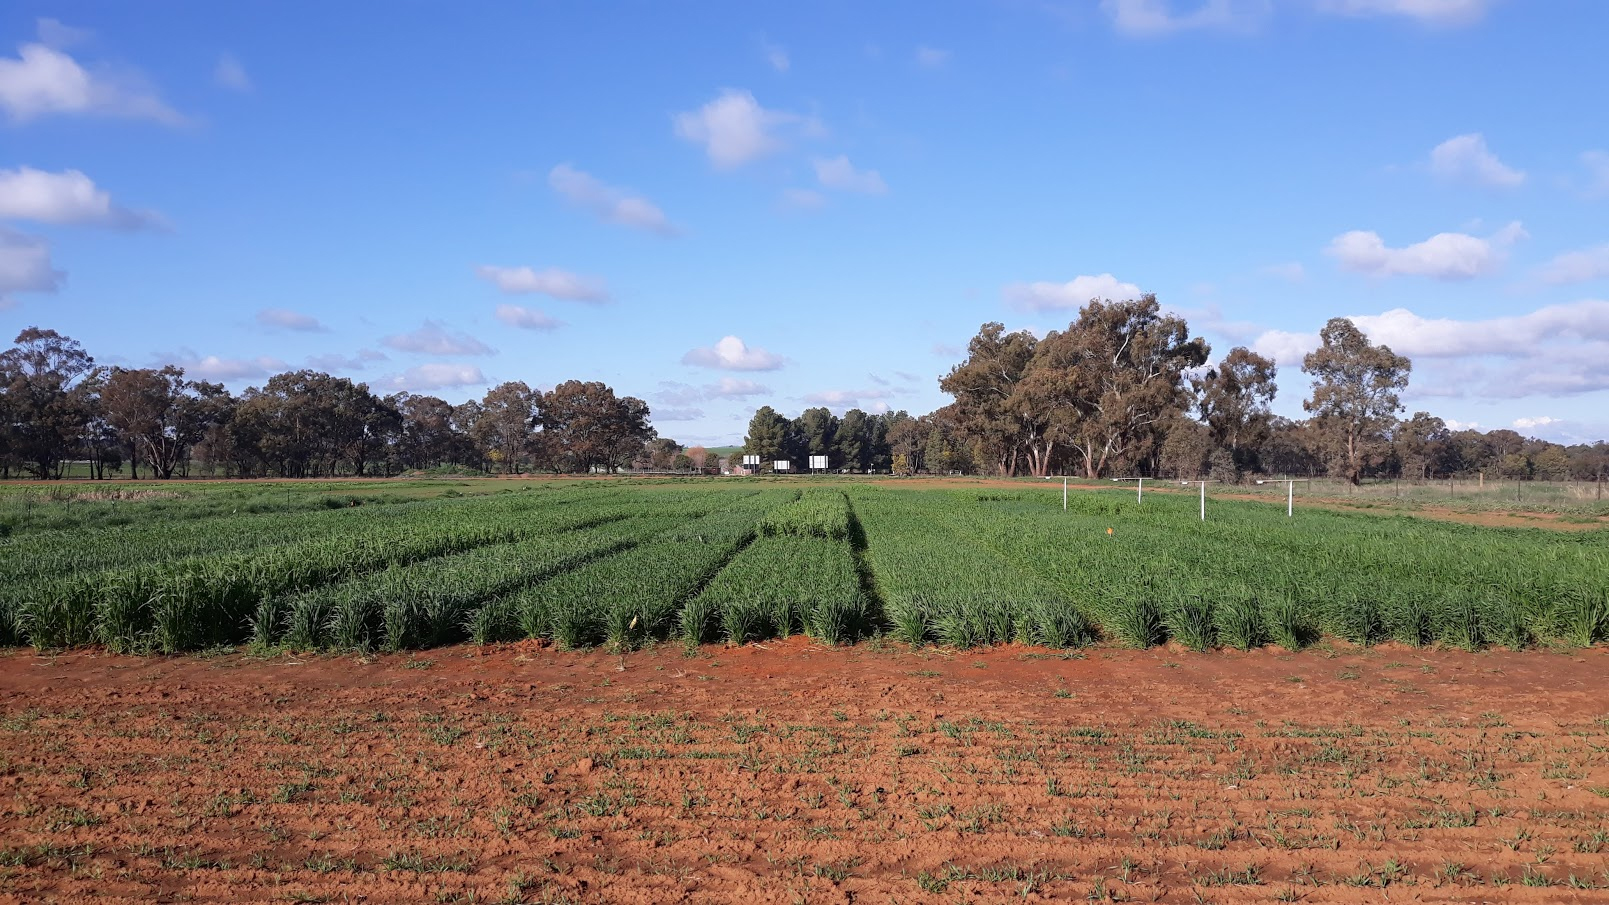 Field experiment in the Graham Centre field site looking at the competitiveness of wheat